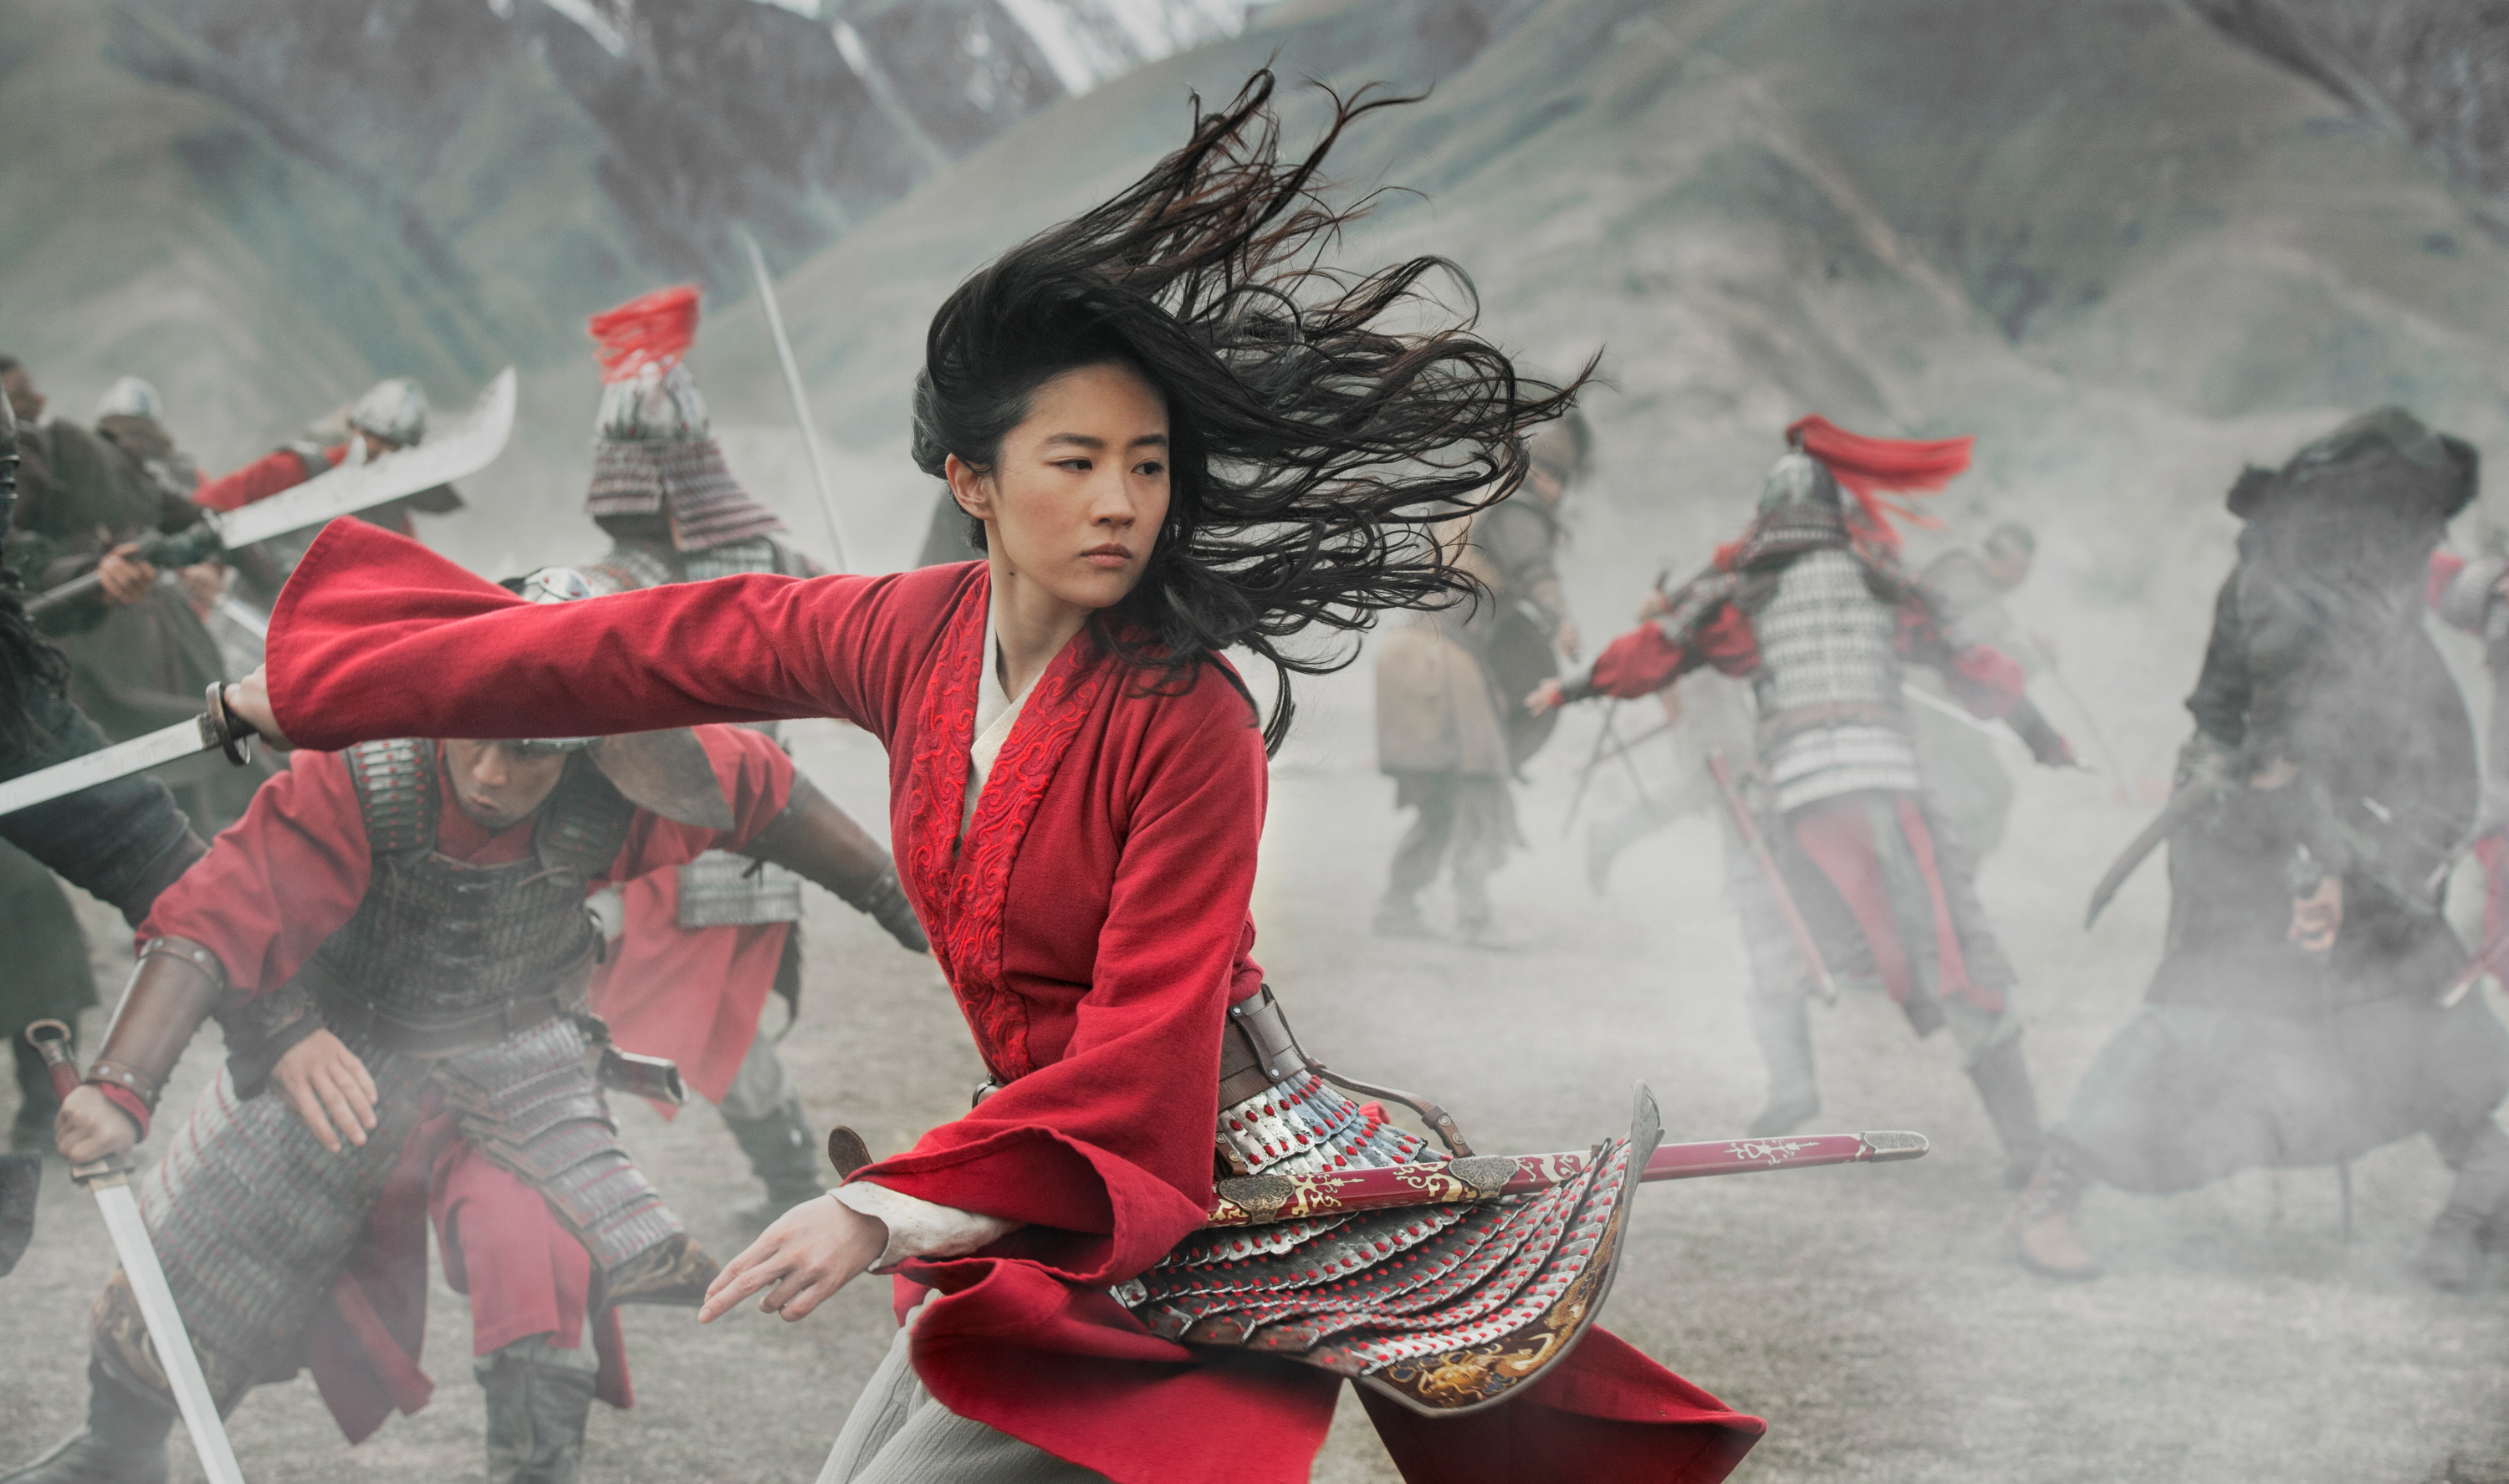 Mulan recognizes that it's telling a timeless tale and allows it to be not so much a remake as a well-done alternate telling of the story.